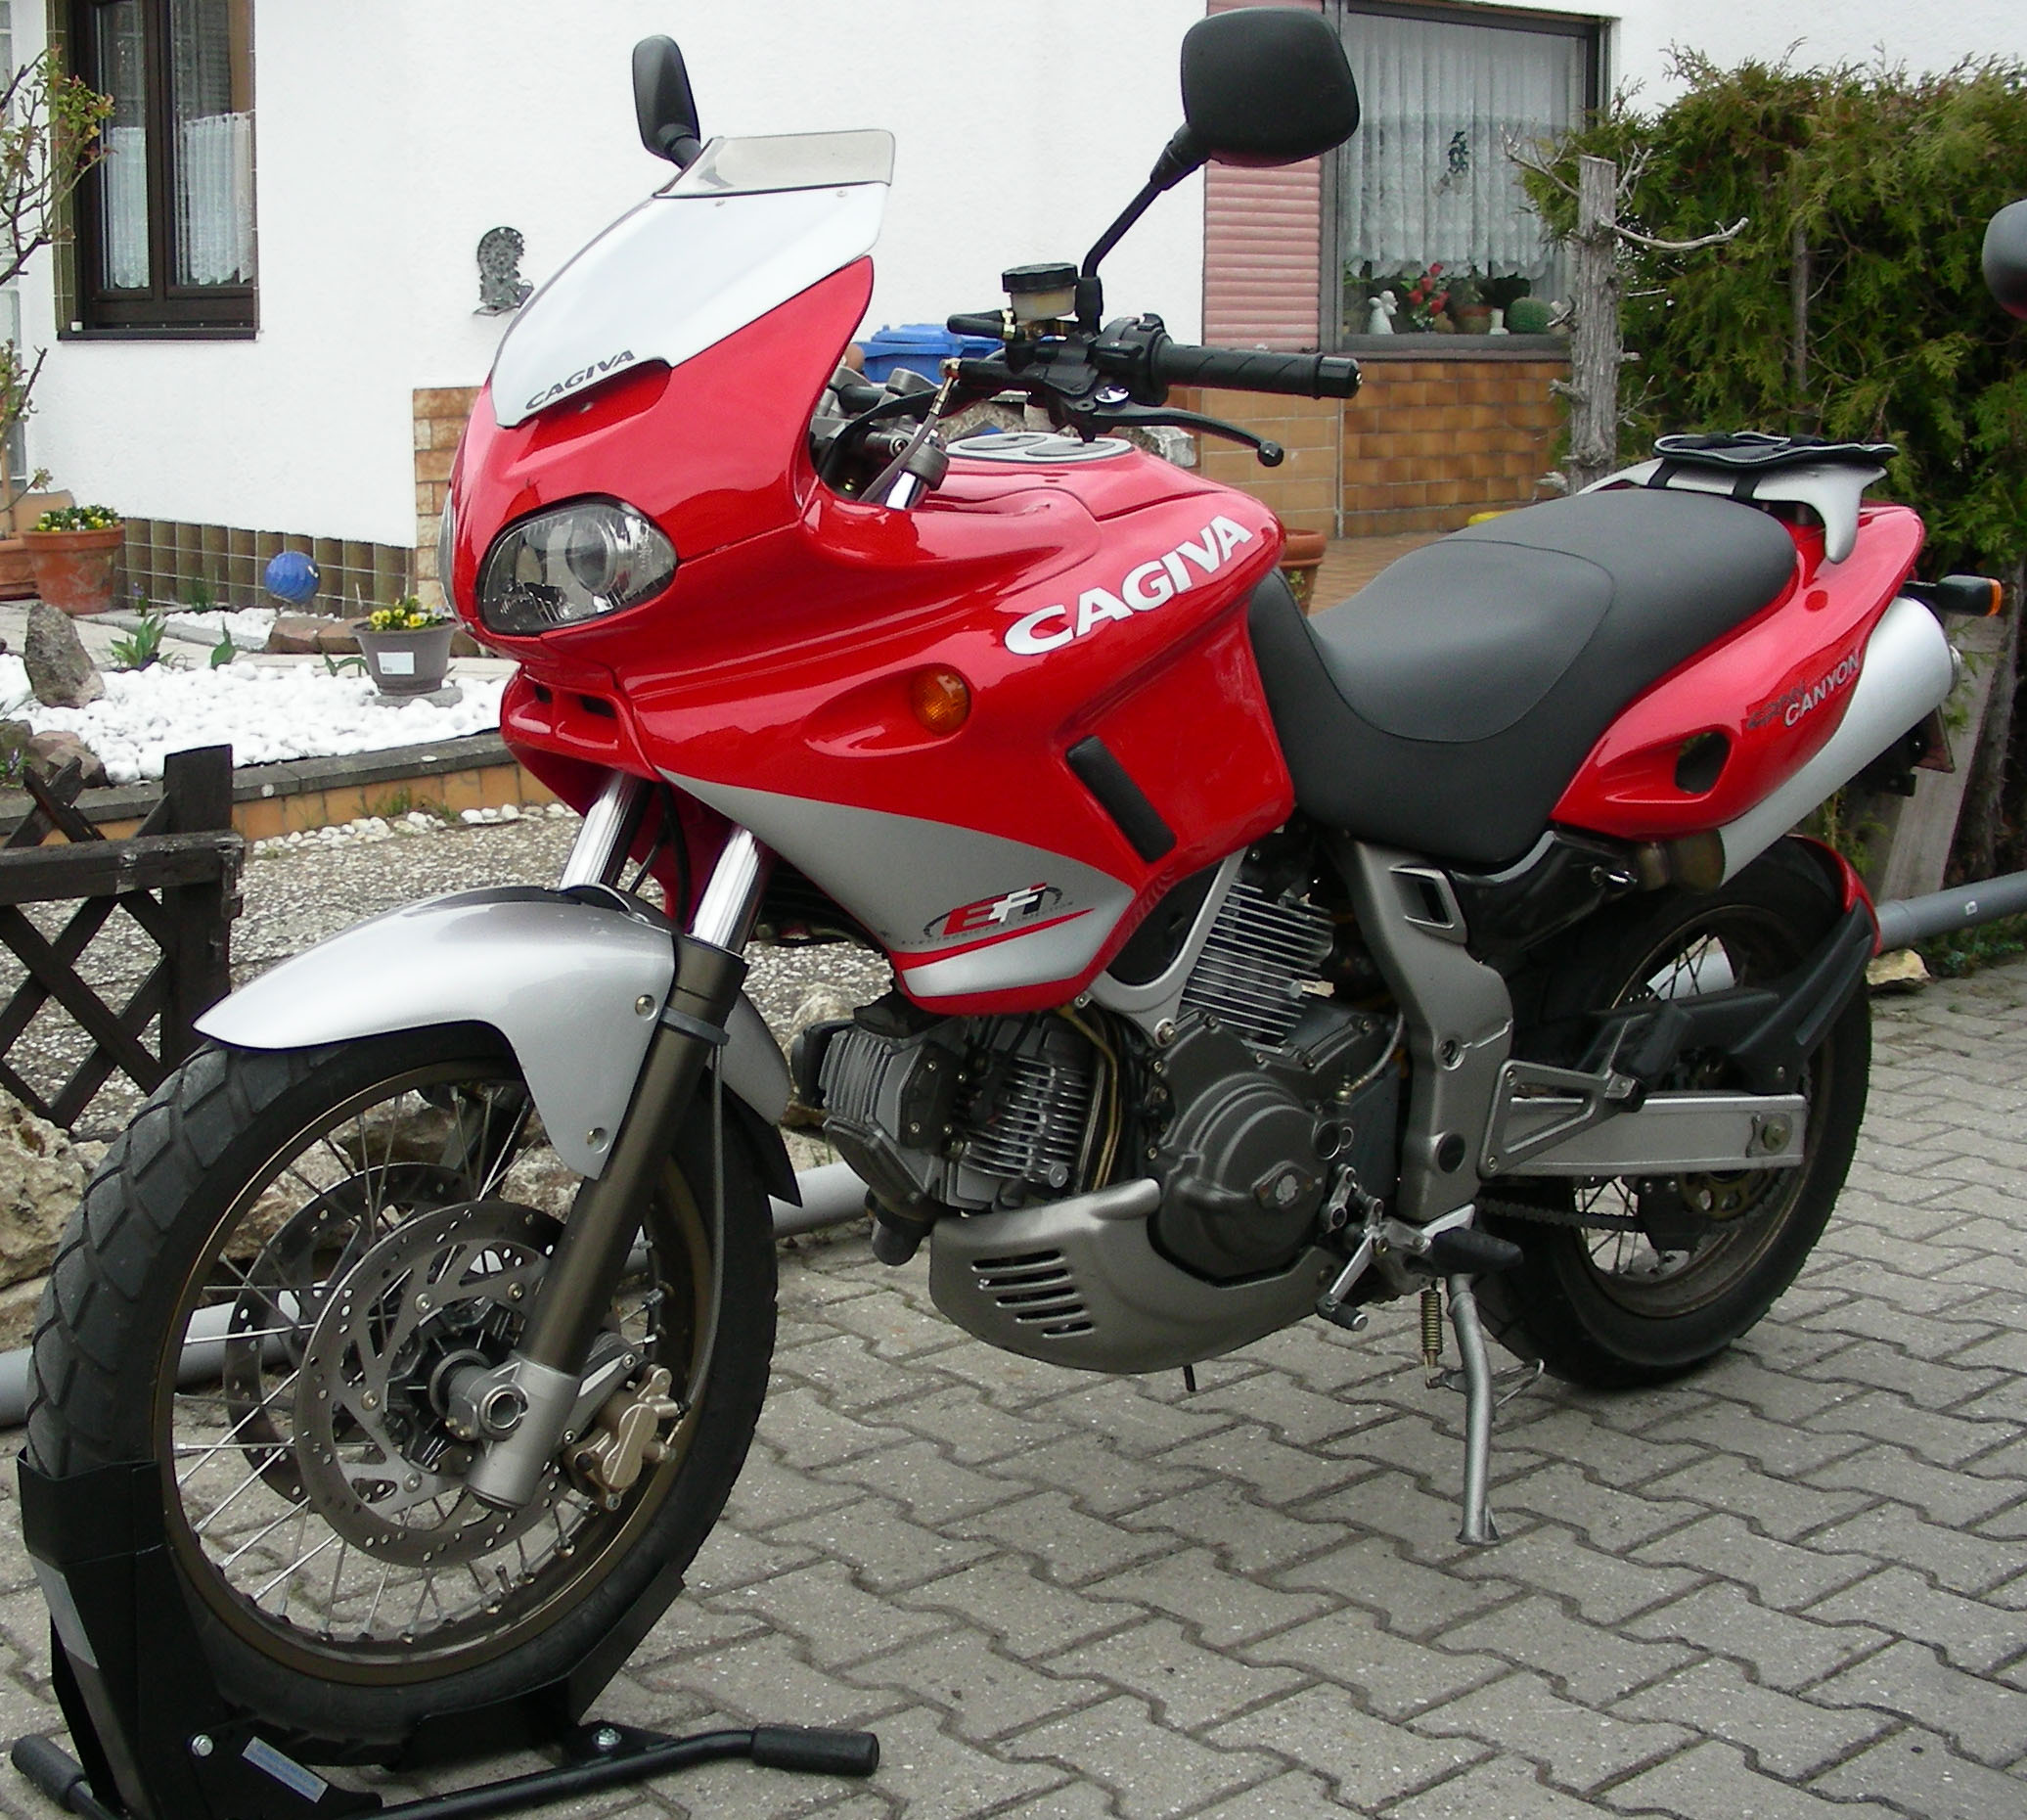 Cagiva Grand Canyon 900 IE 2000 images #93505